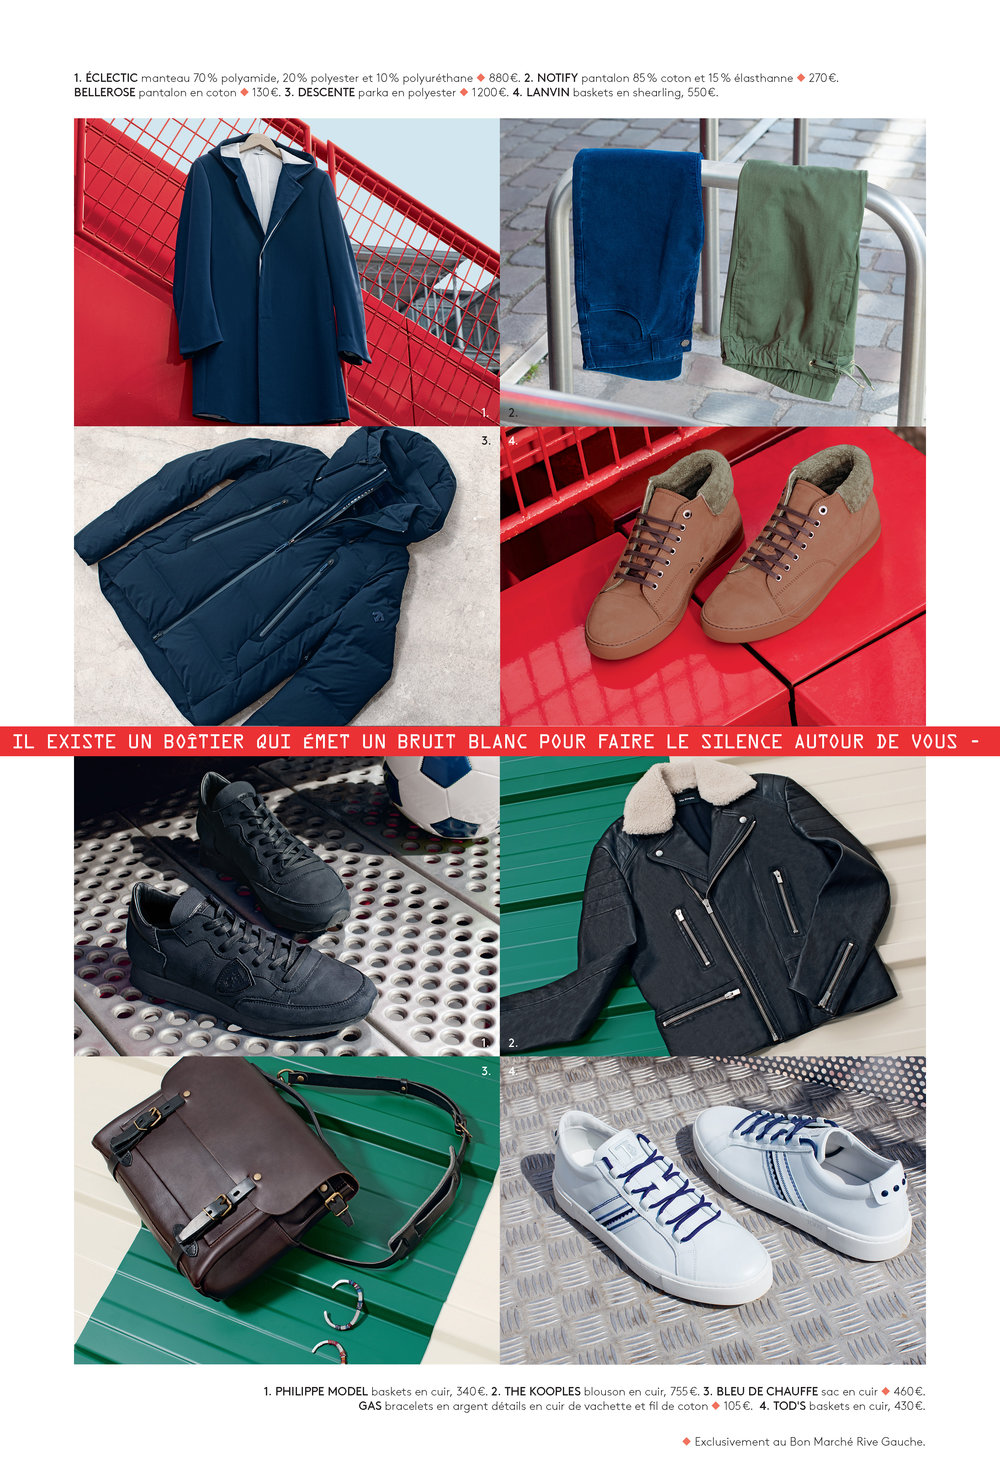 BOMA_2407270_CATALOGUE_HOMME_DP-HD_Page_17 copy.jpg